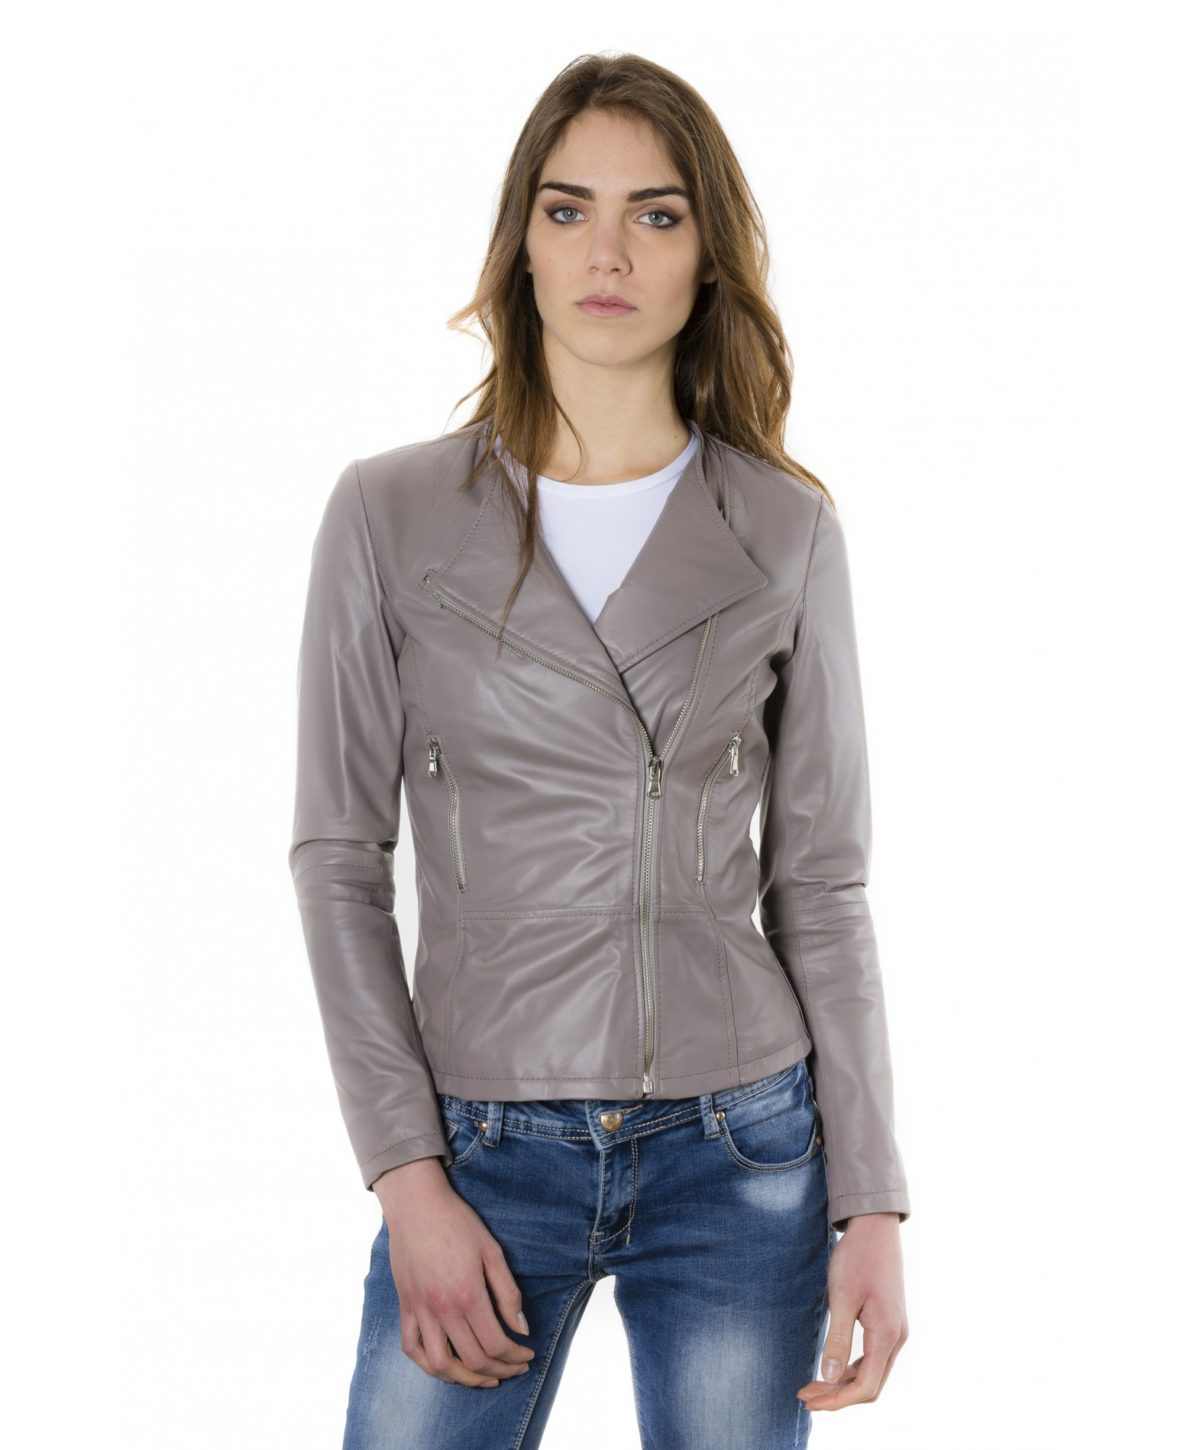 pinko-grey-color-nappa-lamb-leather-jacket-smooth-effect (1)